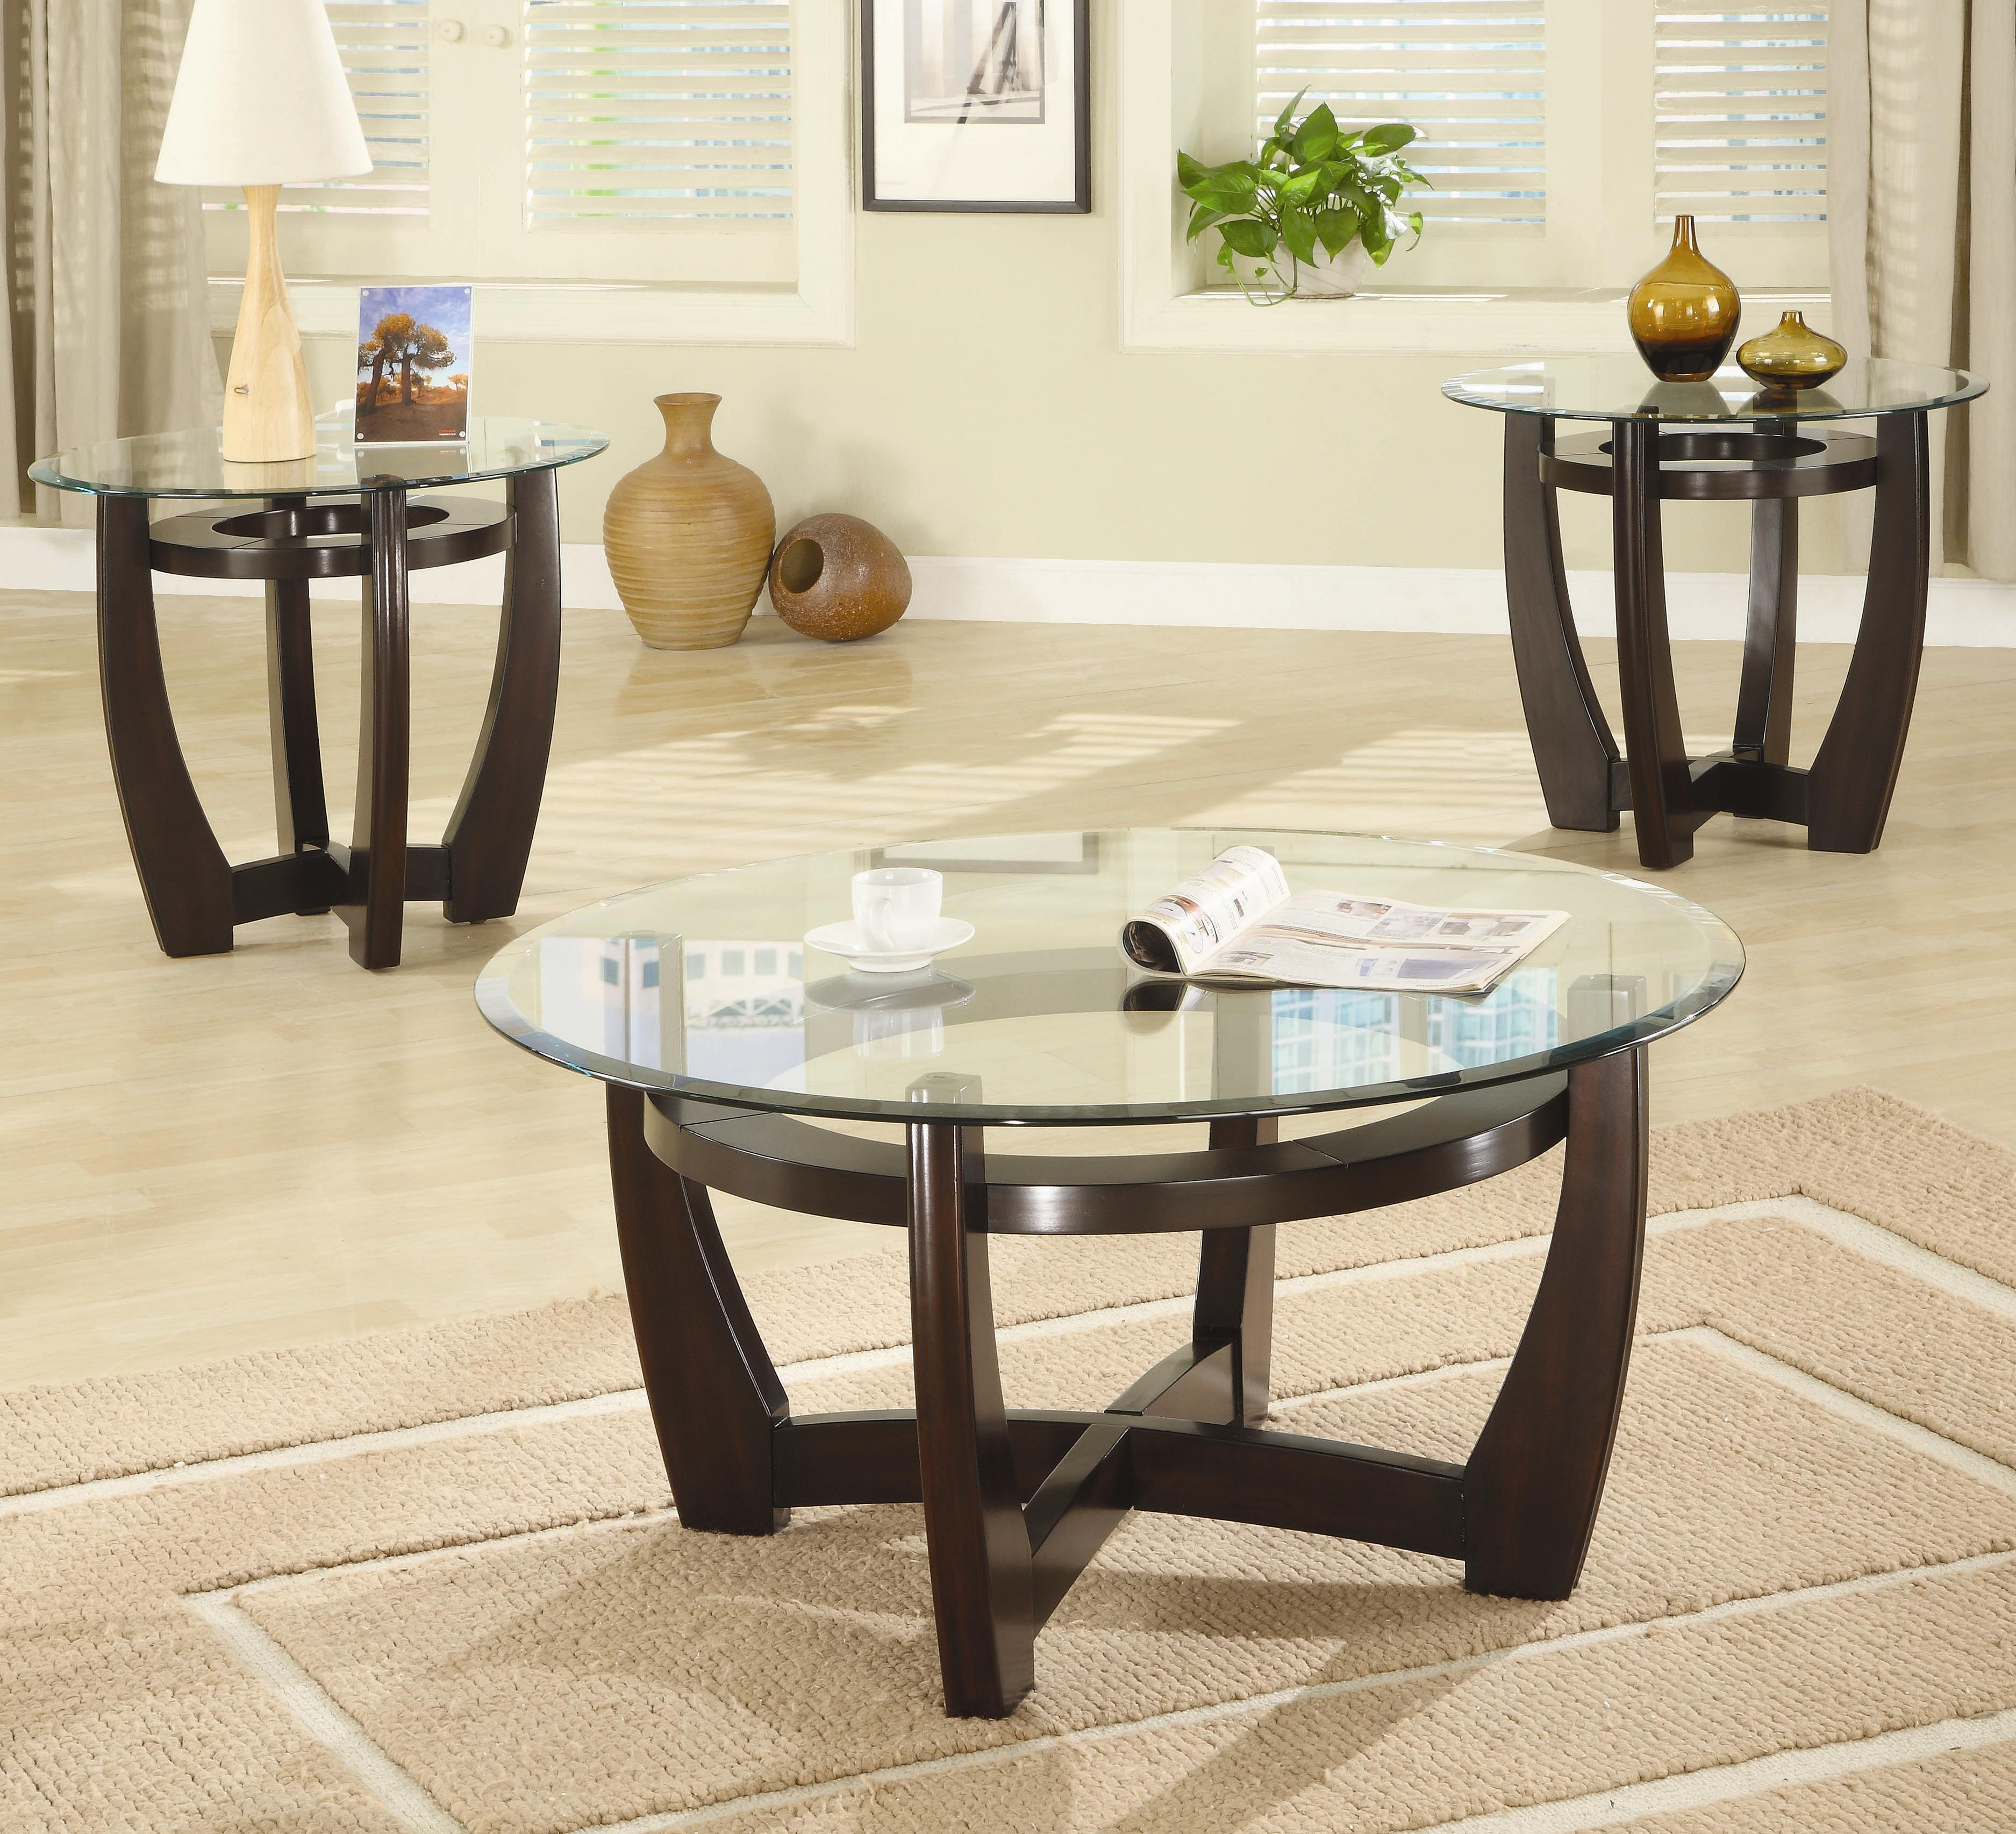 Coaster Occasional Table Sets 3 Piece Contemporary Round Coffee End Set